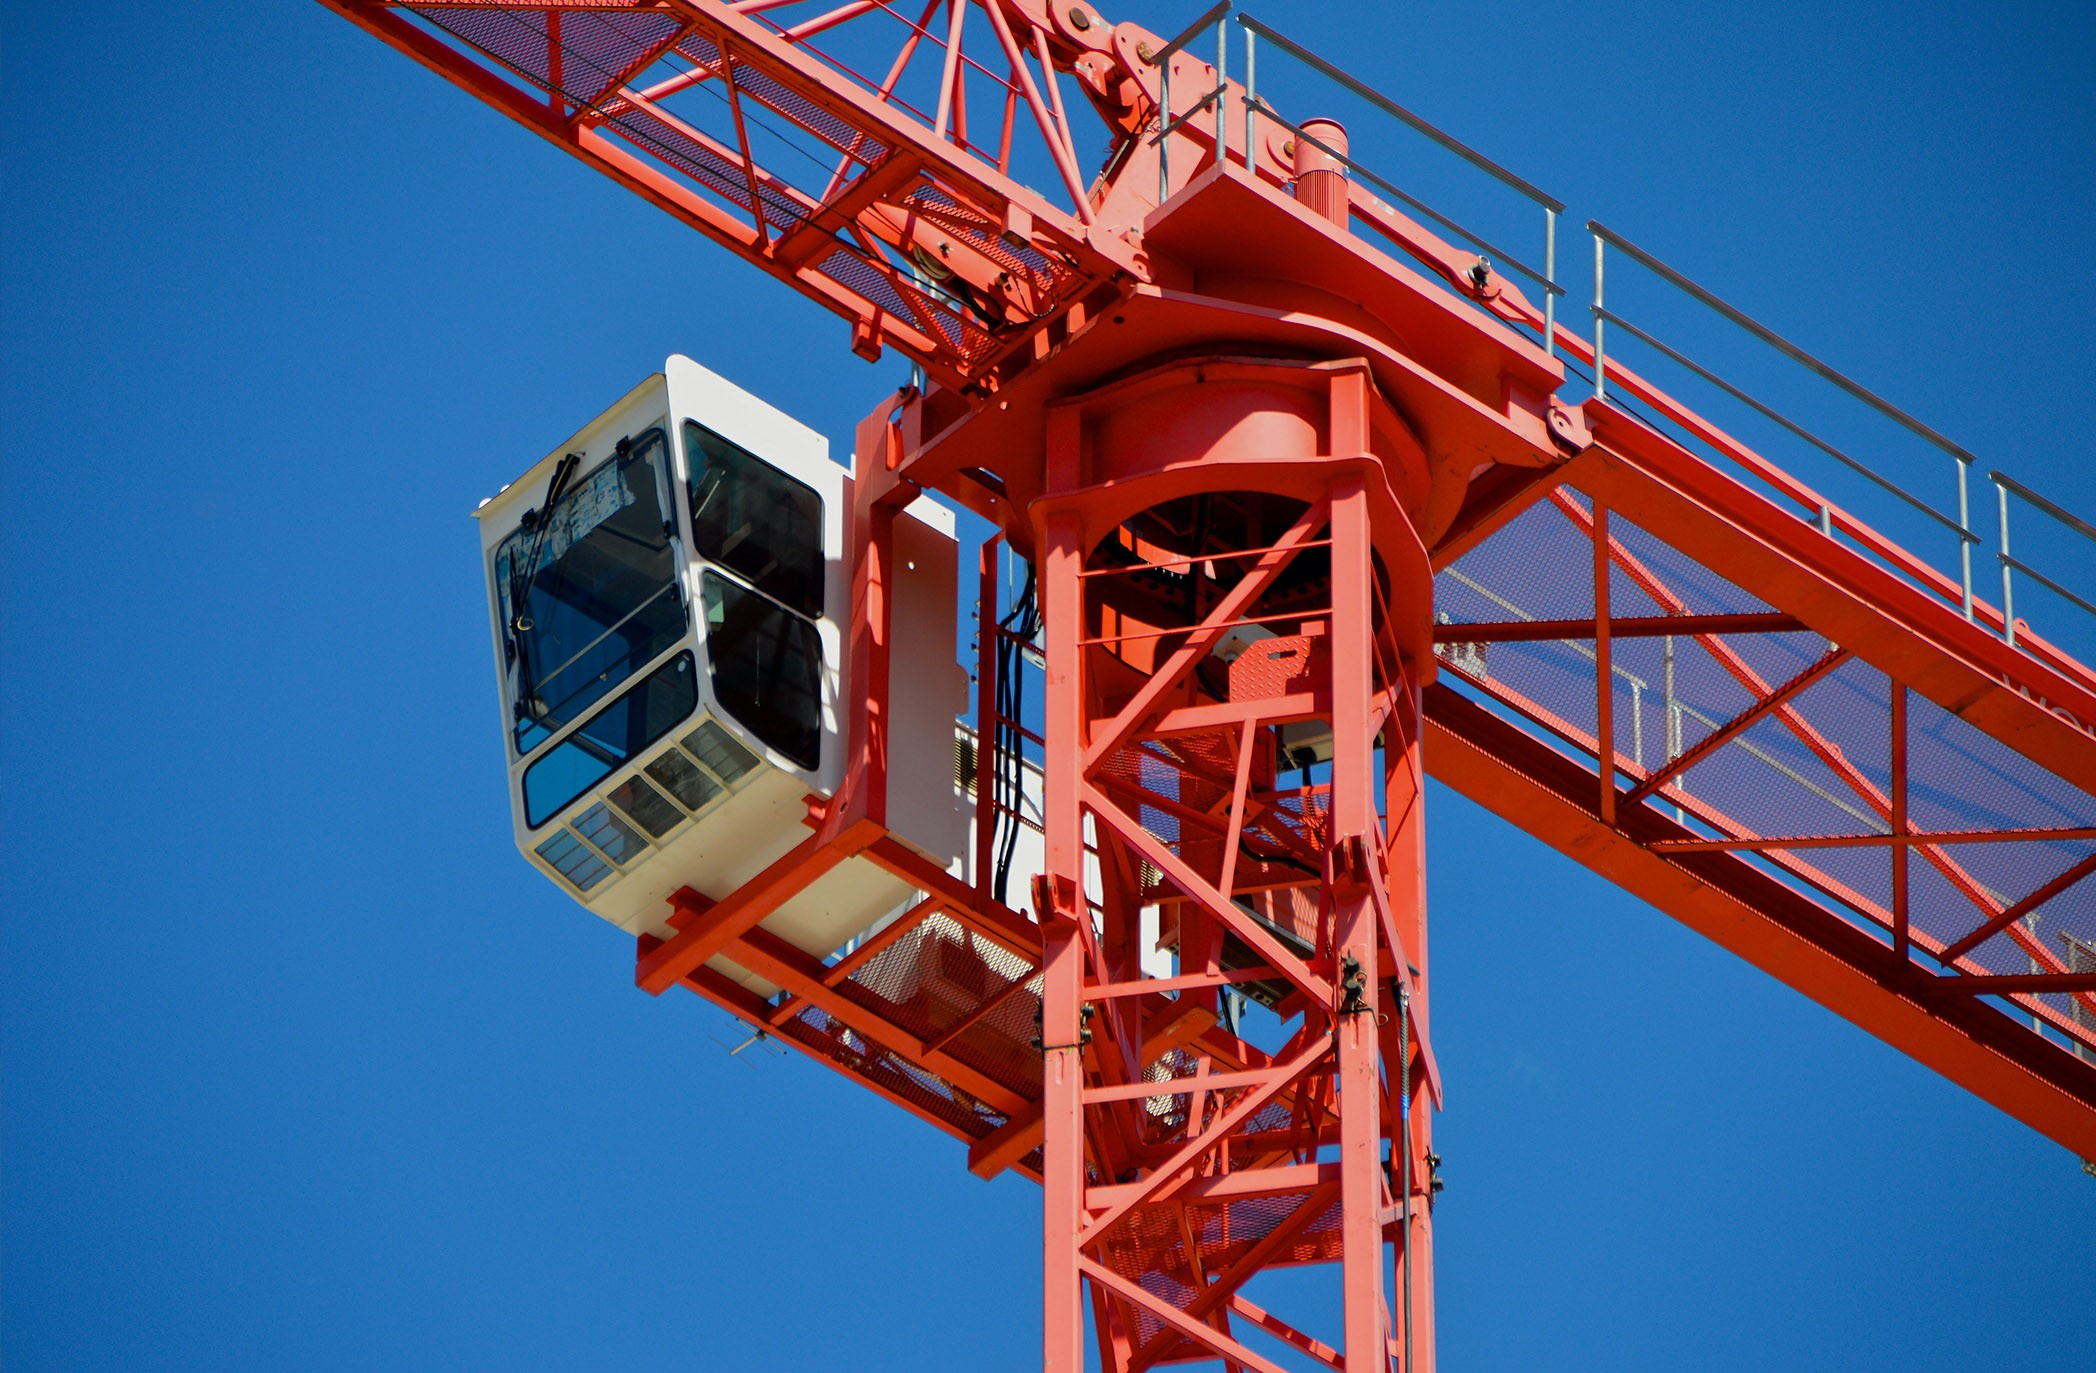 EMC can cause problems for construction equipment